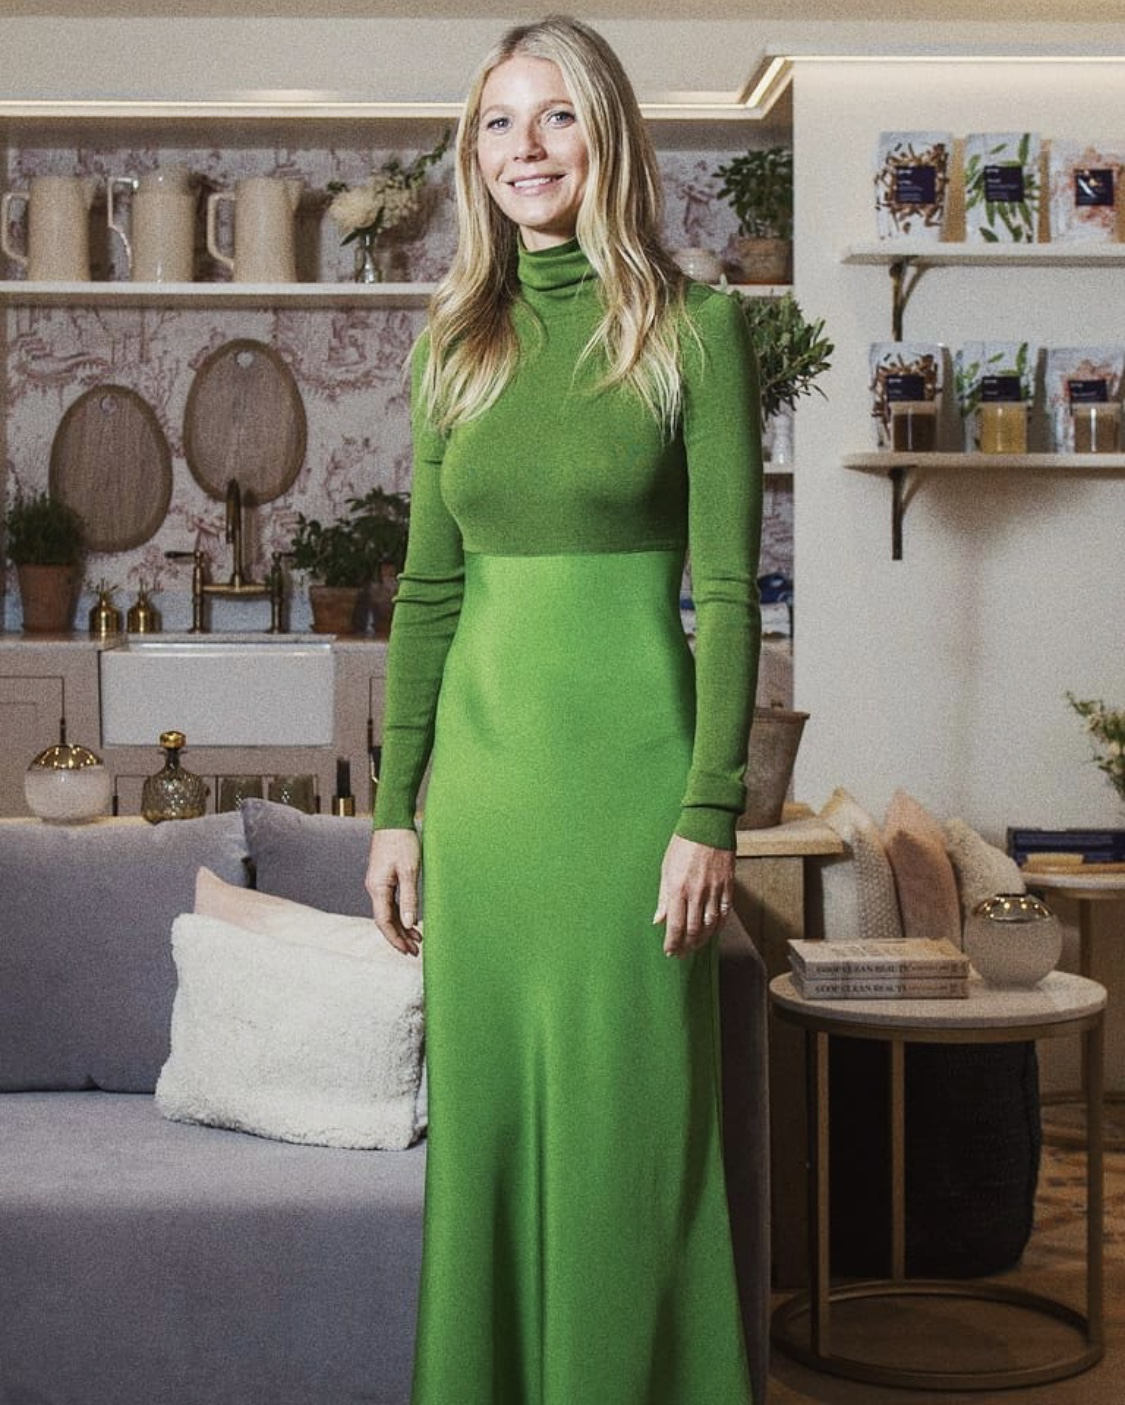 Gwyneth Paltrow attends Goop x Harvey Nichols Opening June 2019/ Styled by Natalie Hoselton